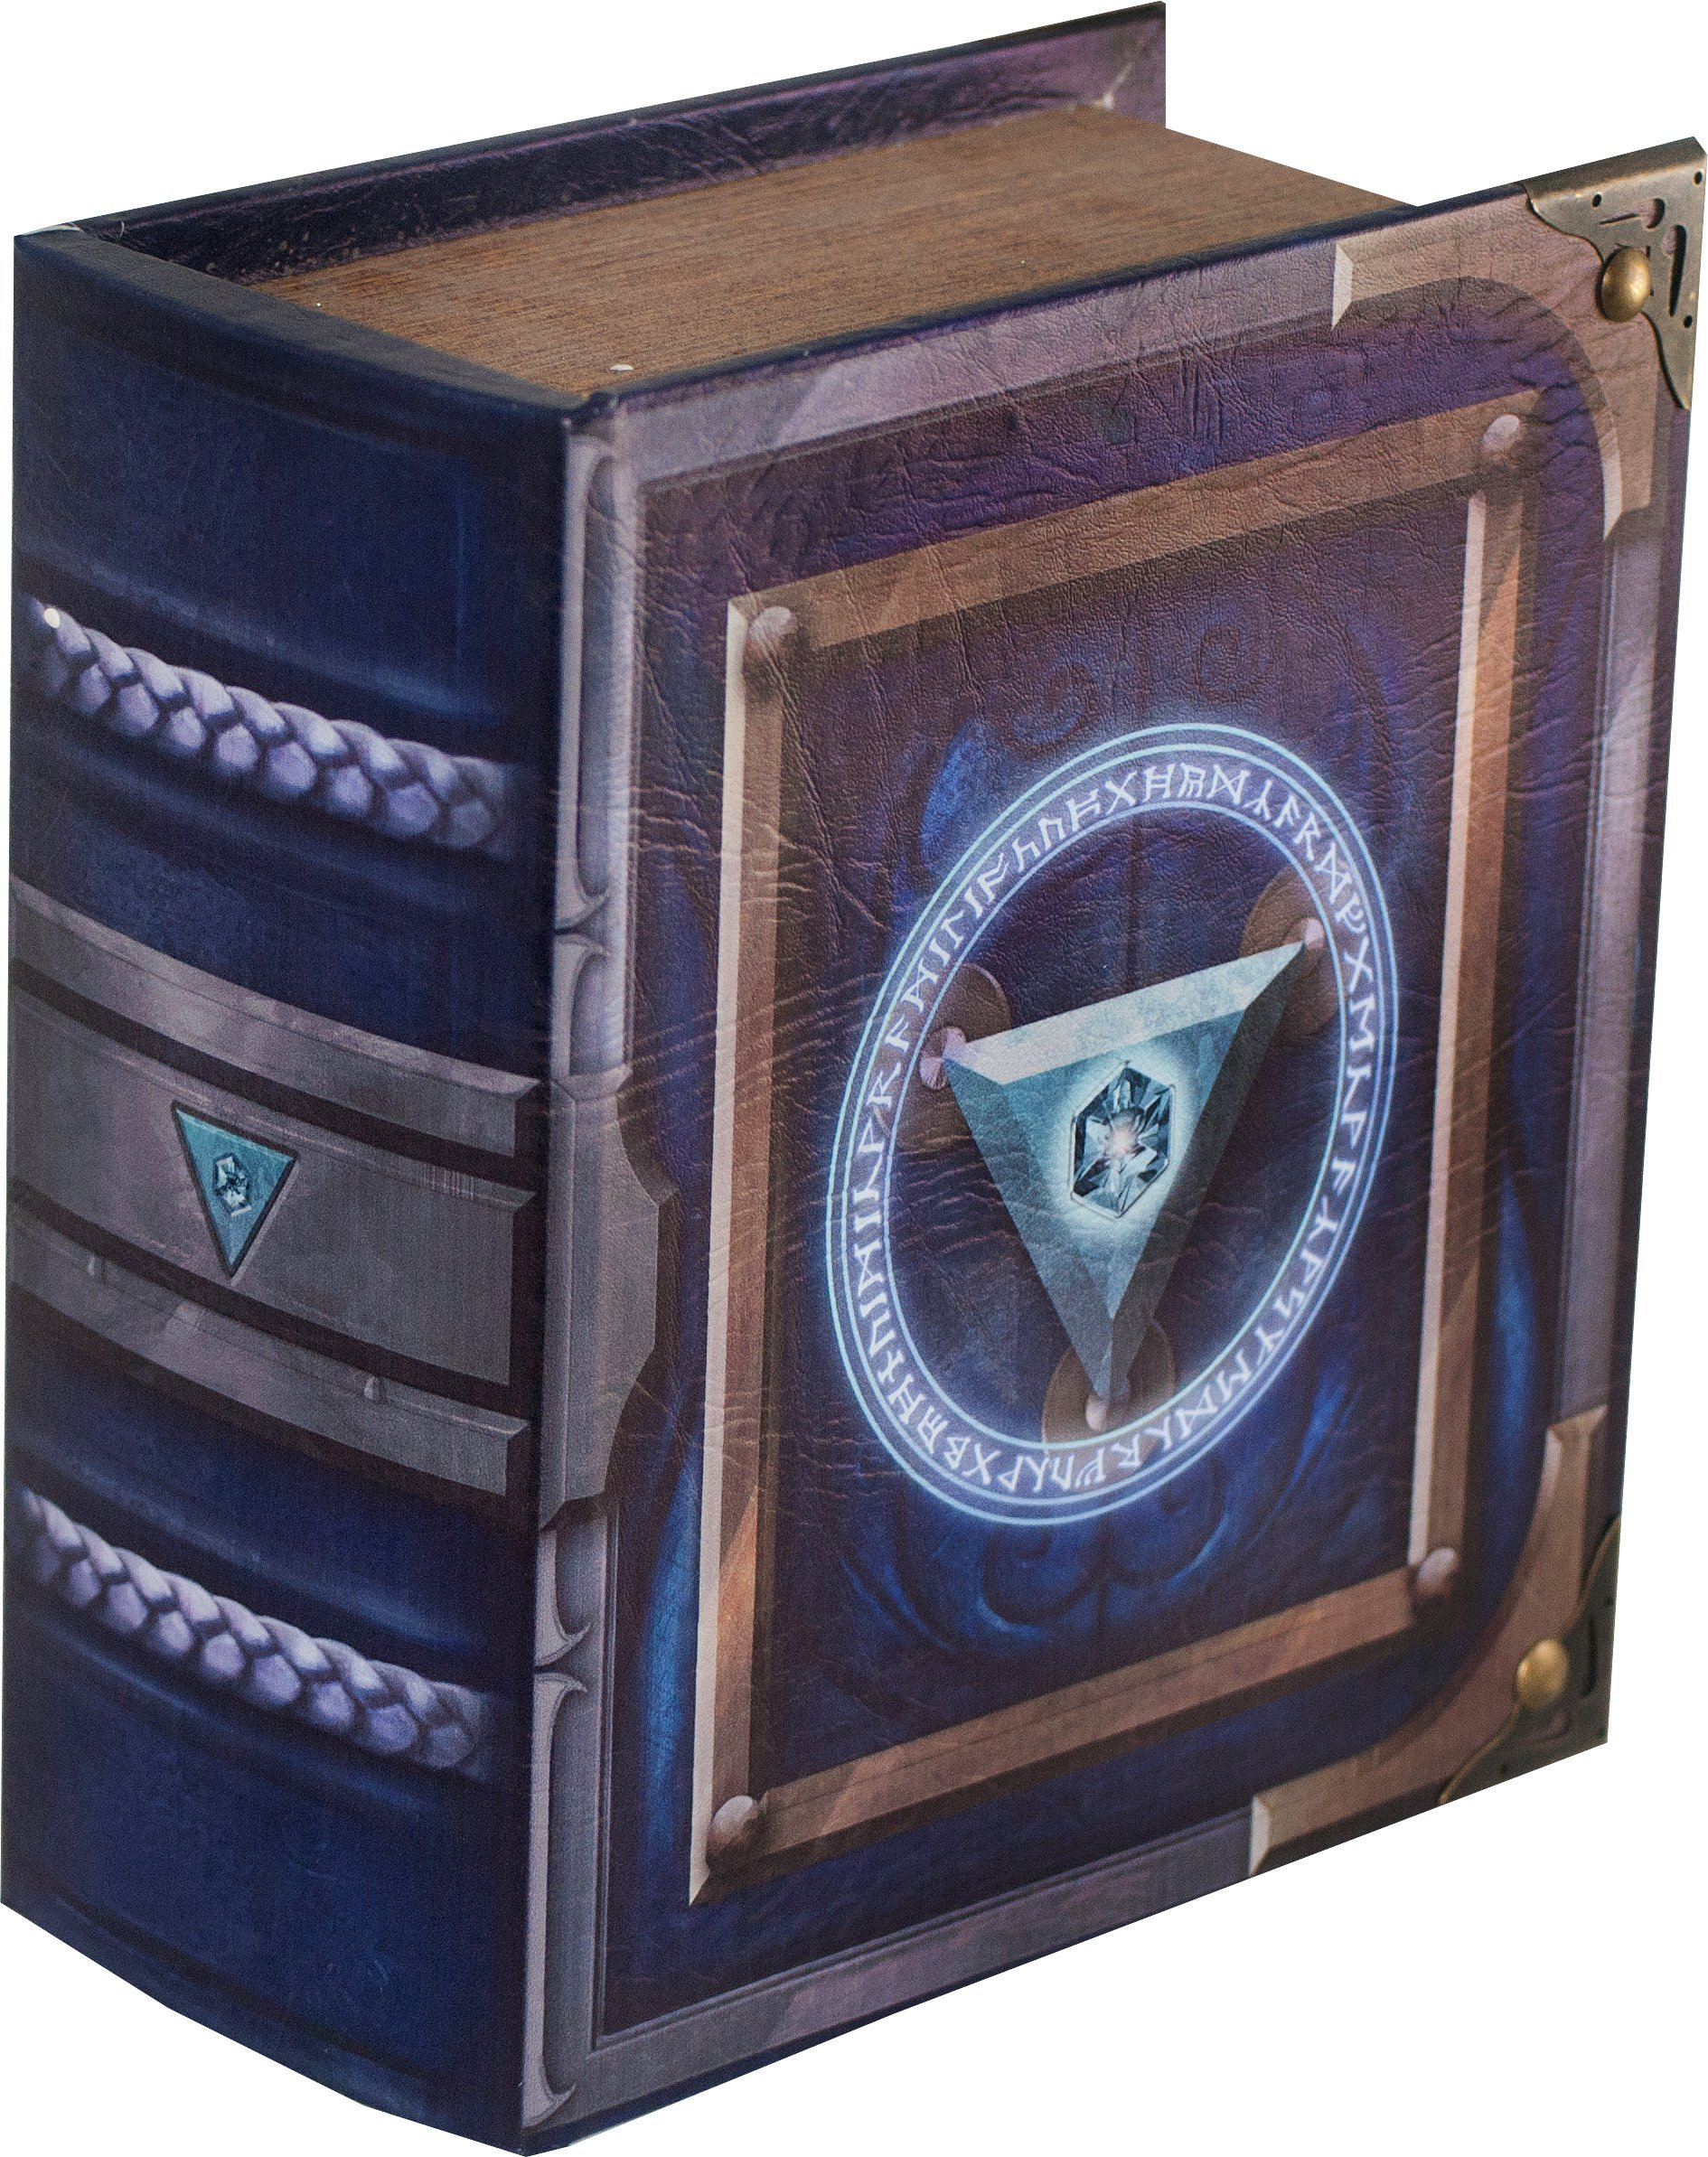 Grimoire Pro Tour, Arbiter | Wooden Spellbook Style Fabric Lined Portable Deck Box for MTG, Yugioh, and Other TCG | 350+ Card Capacity by Wizardry Foundry